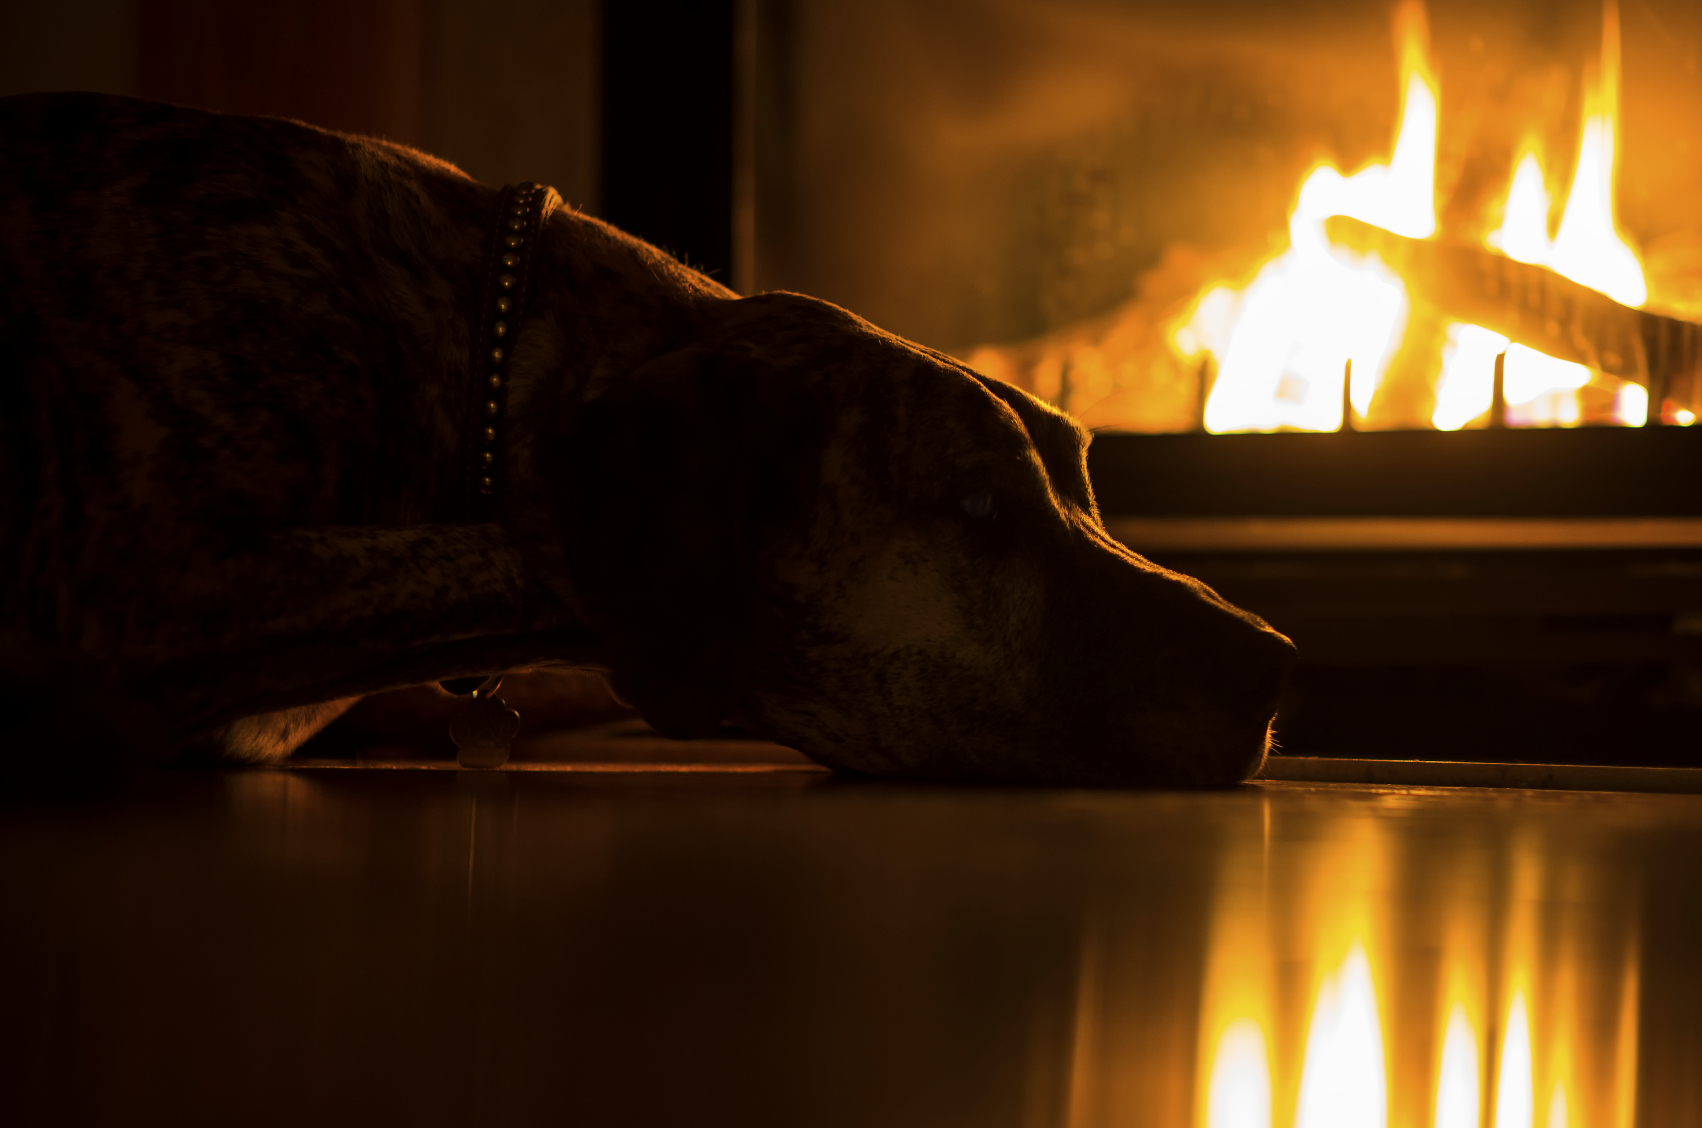 dog next to a fireplaces